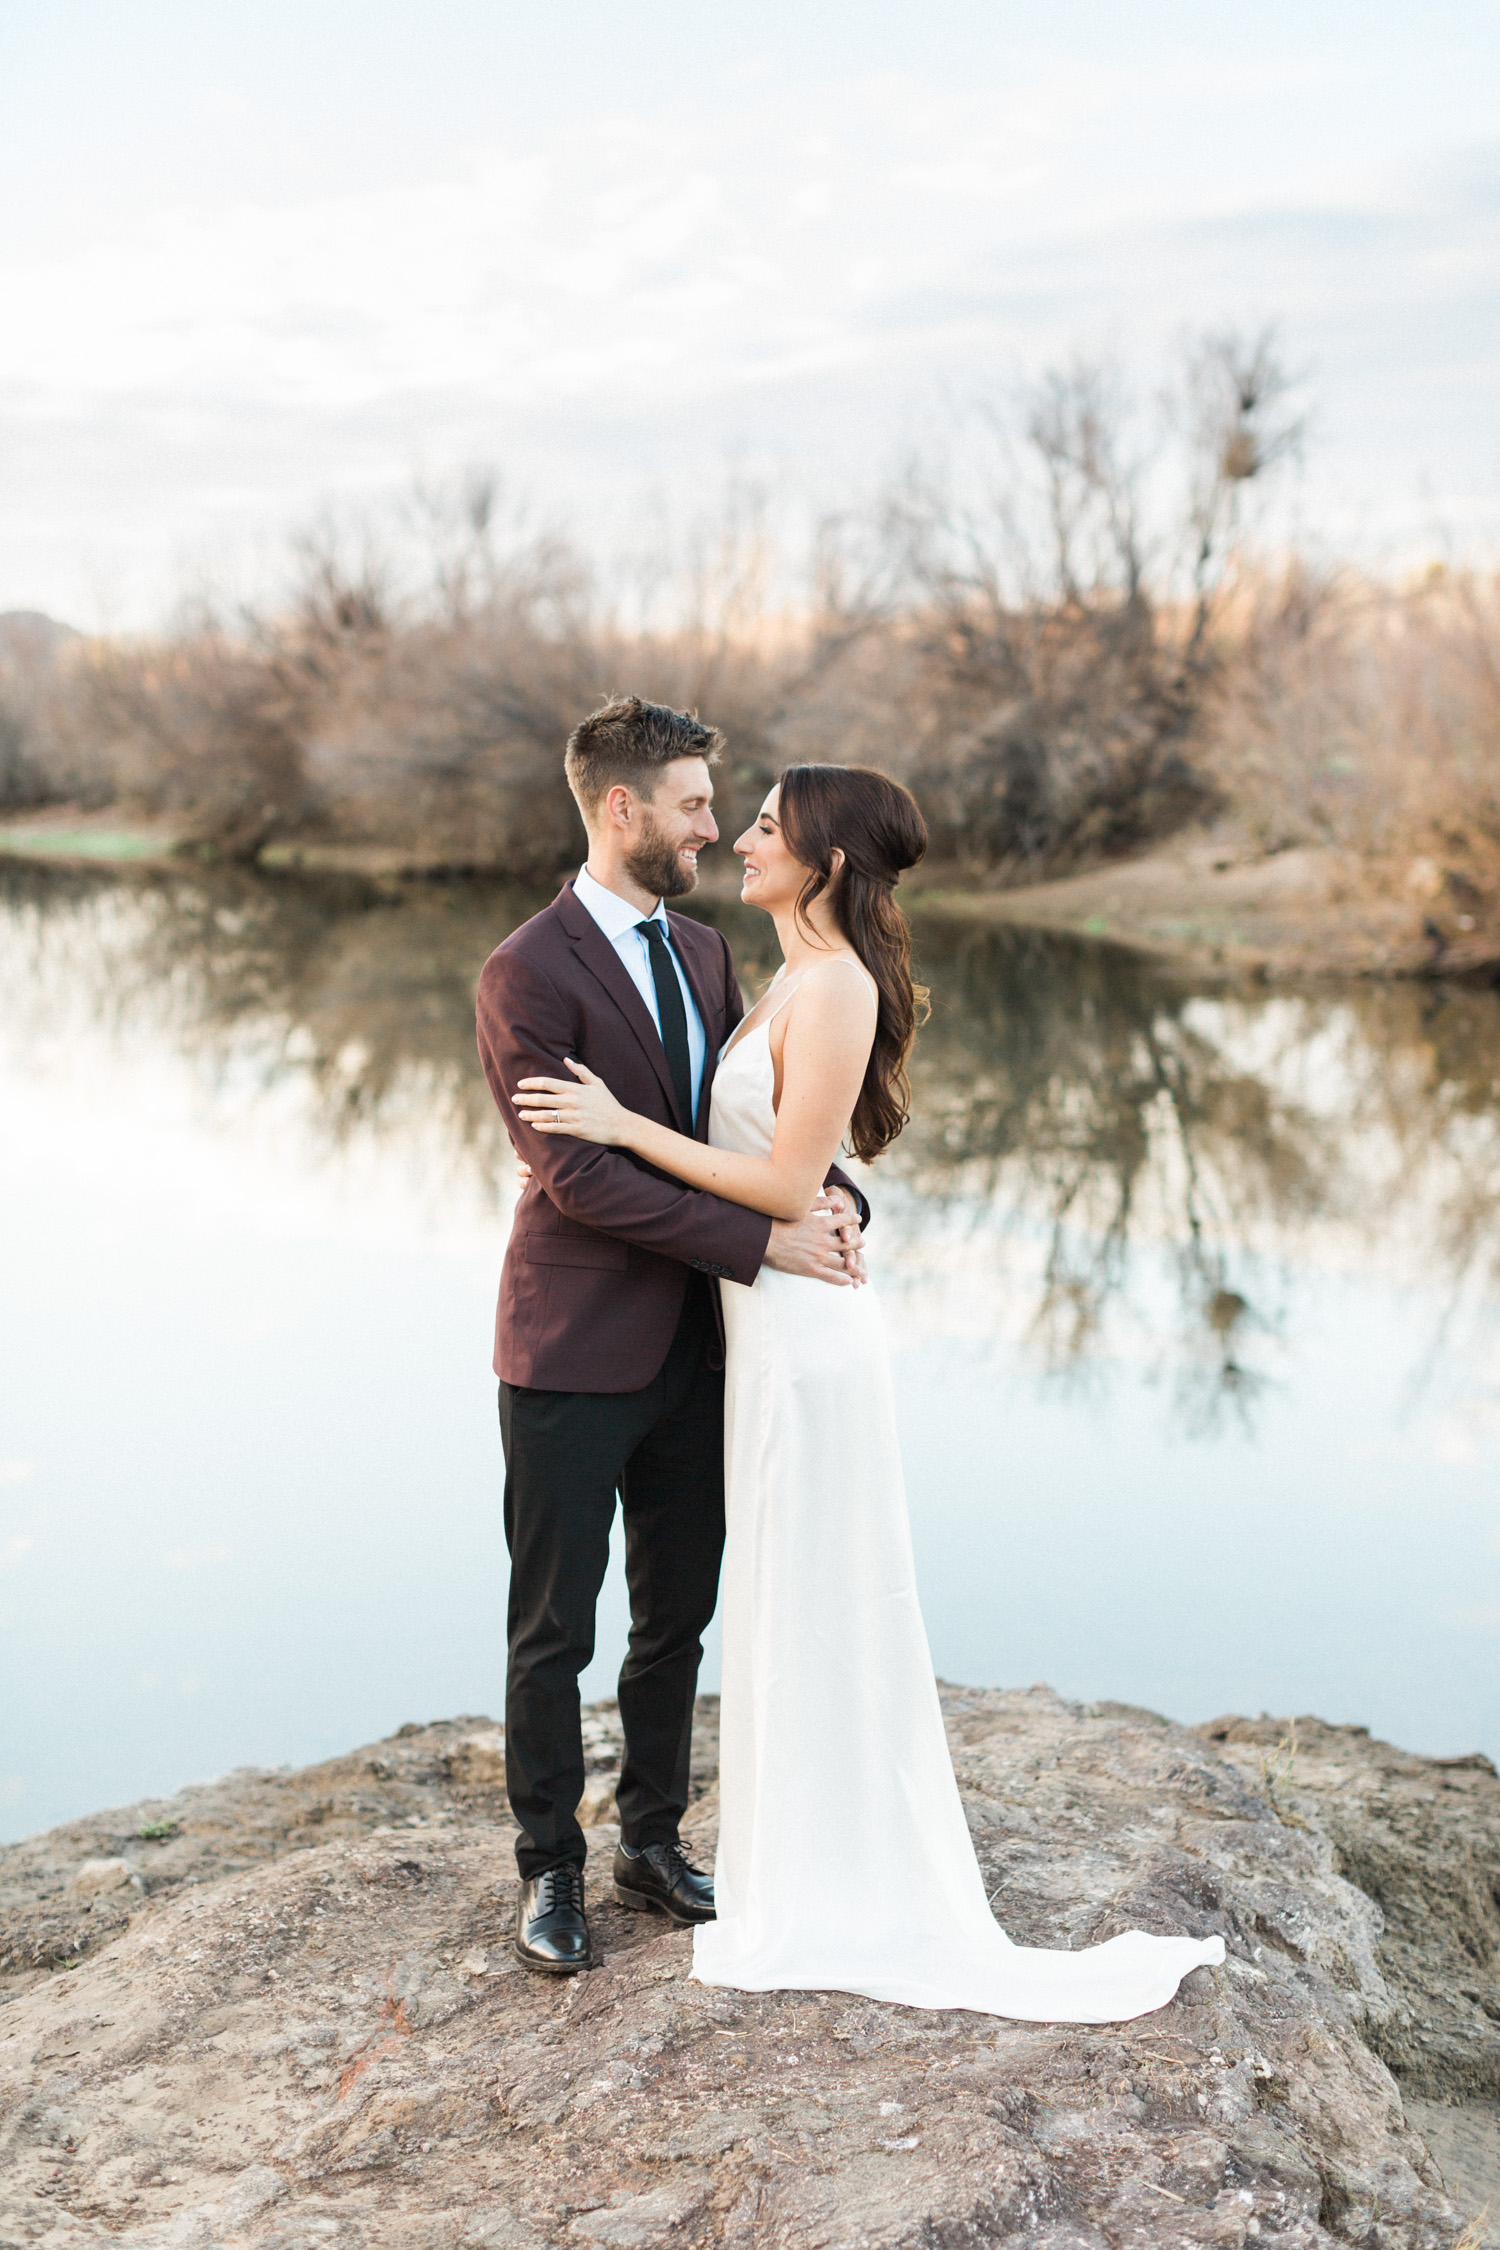 Beautiful bride and groom embracing at their Phoenix elopement with the Salt River in the background.